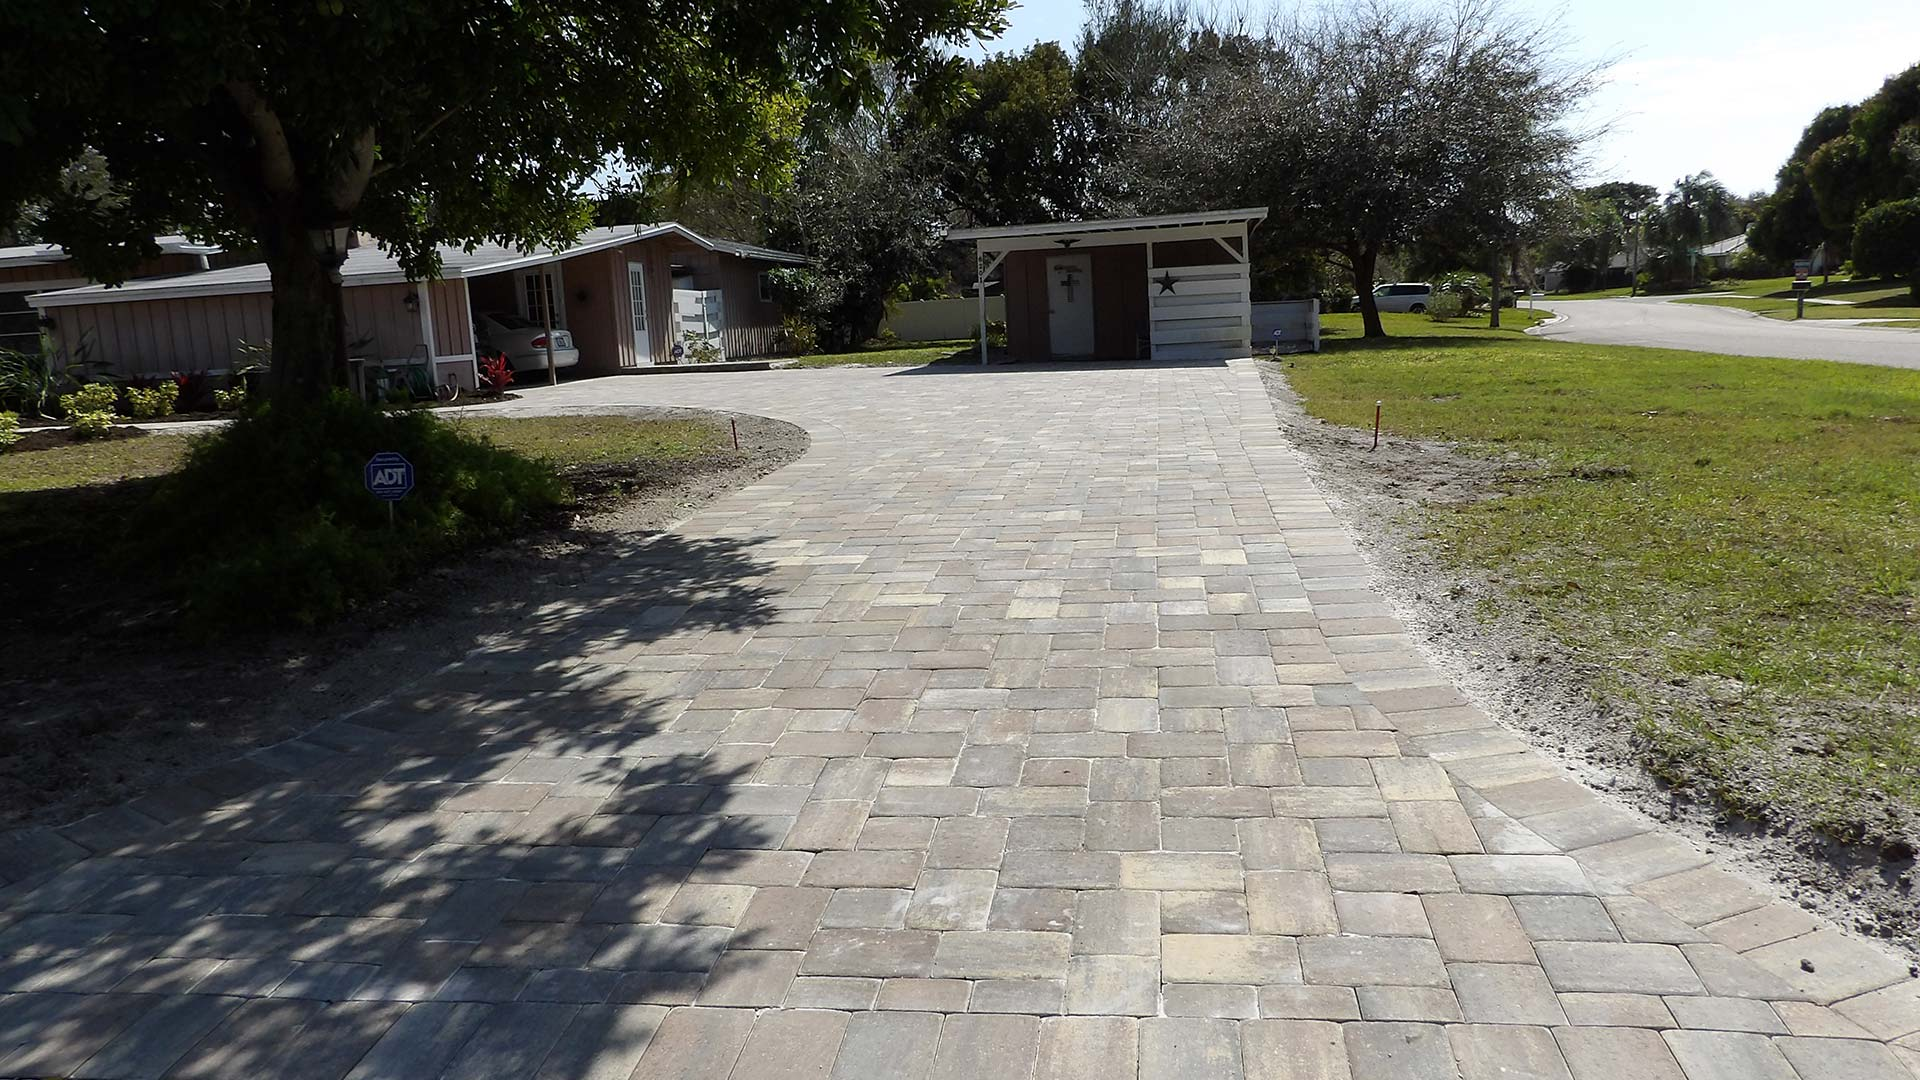 Custom paver driveway installation at a home in Palmetto, FL.